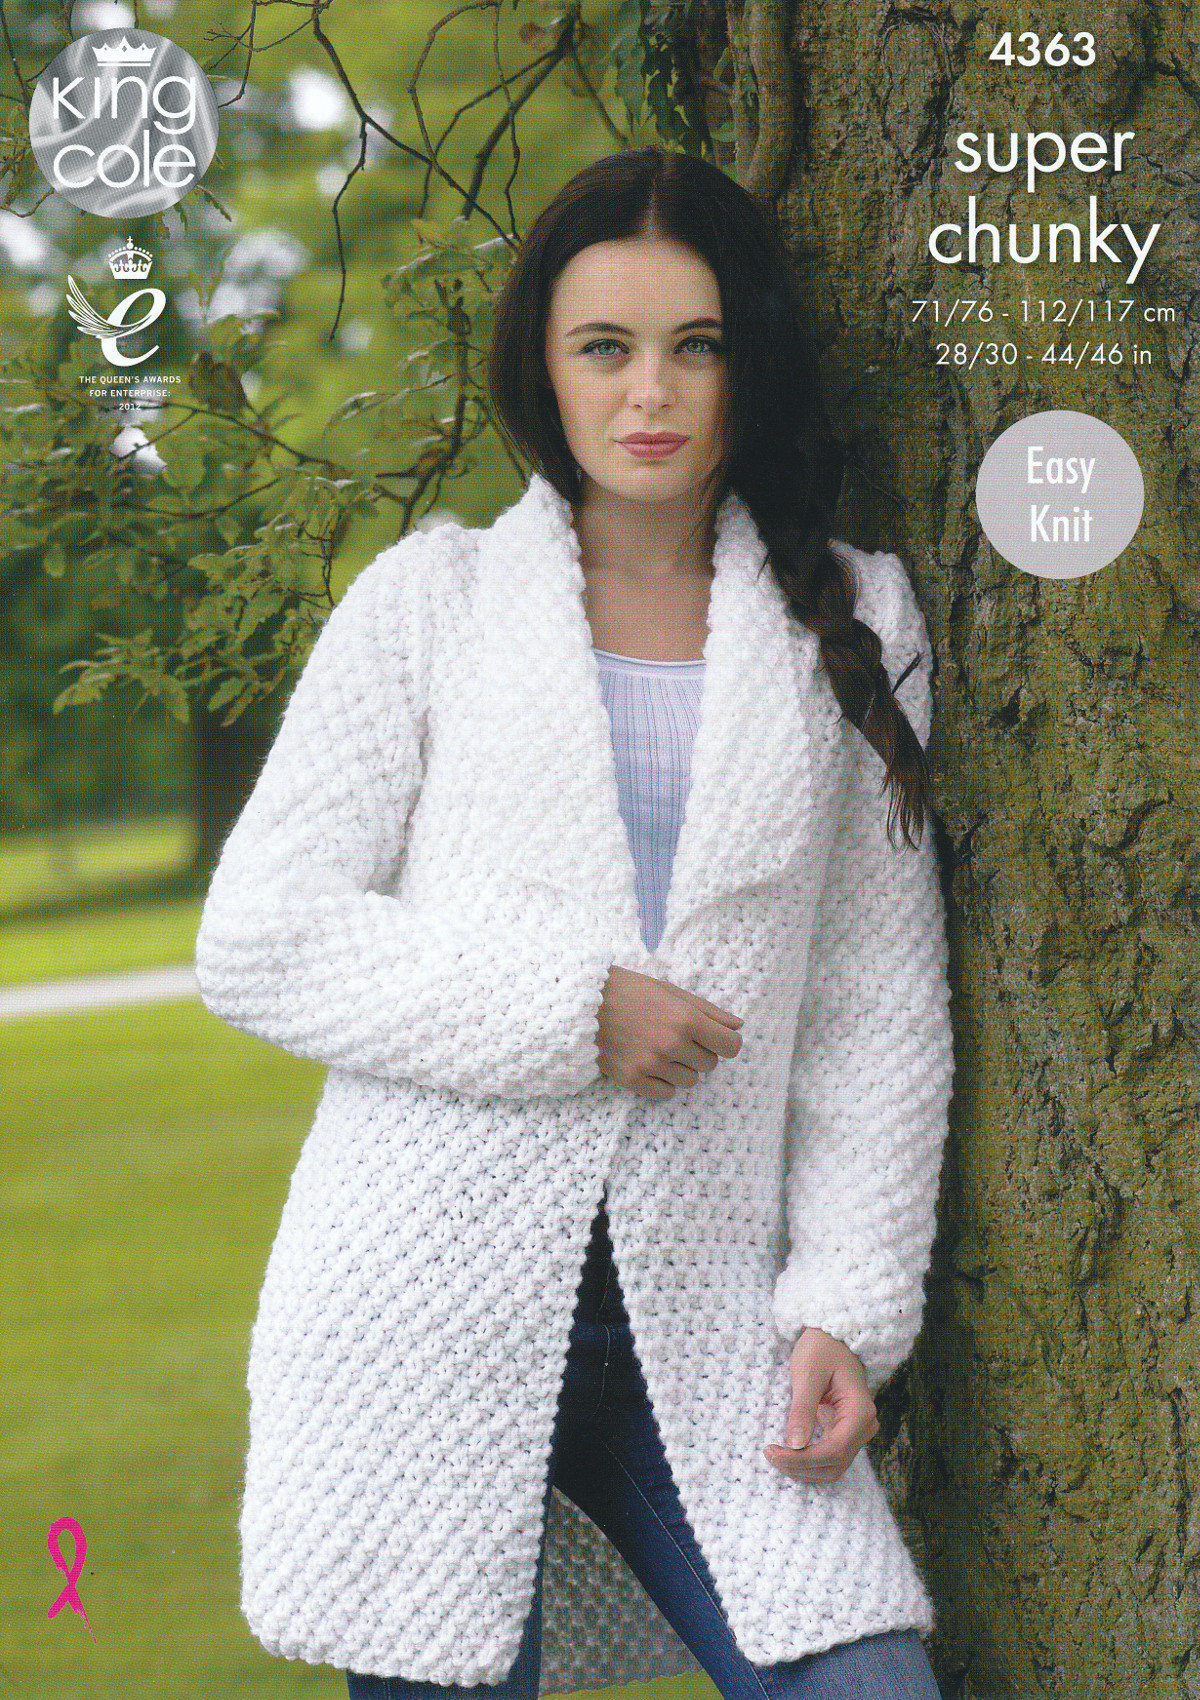 Ladies super chunky knitting pattern king cole easy knit sweater ladies super chunky knitting pattern king cole easy knit sweater jacket 4363 bankloansurffo Image collections